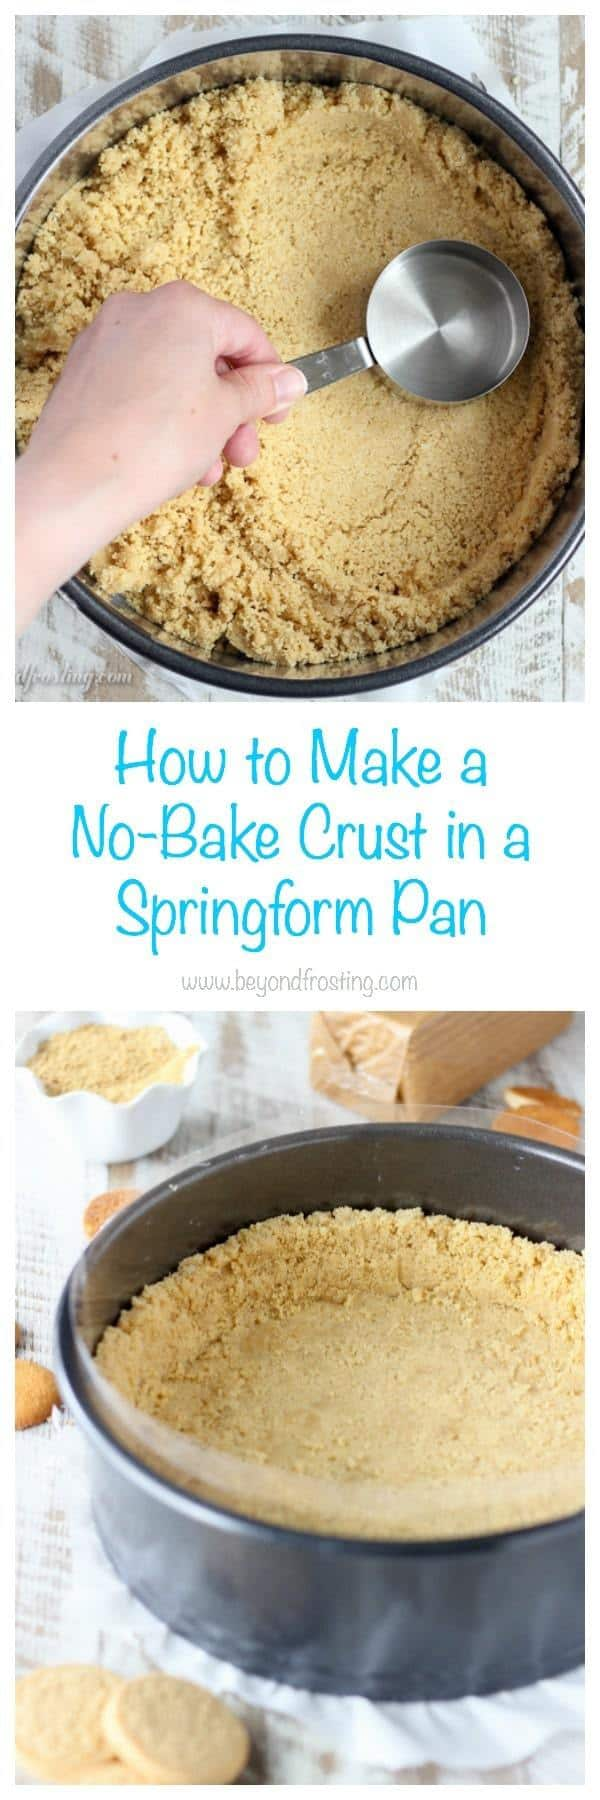 How To Make A No Bake Crust In A Springform Pan Beyond